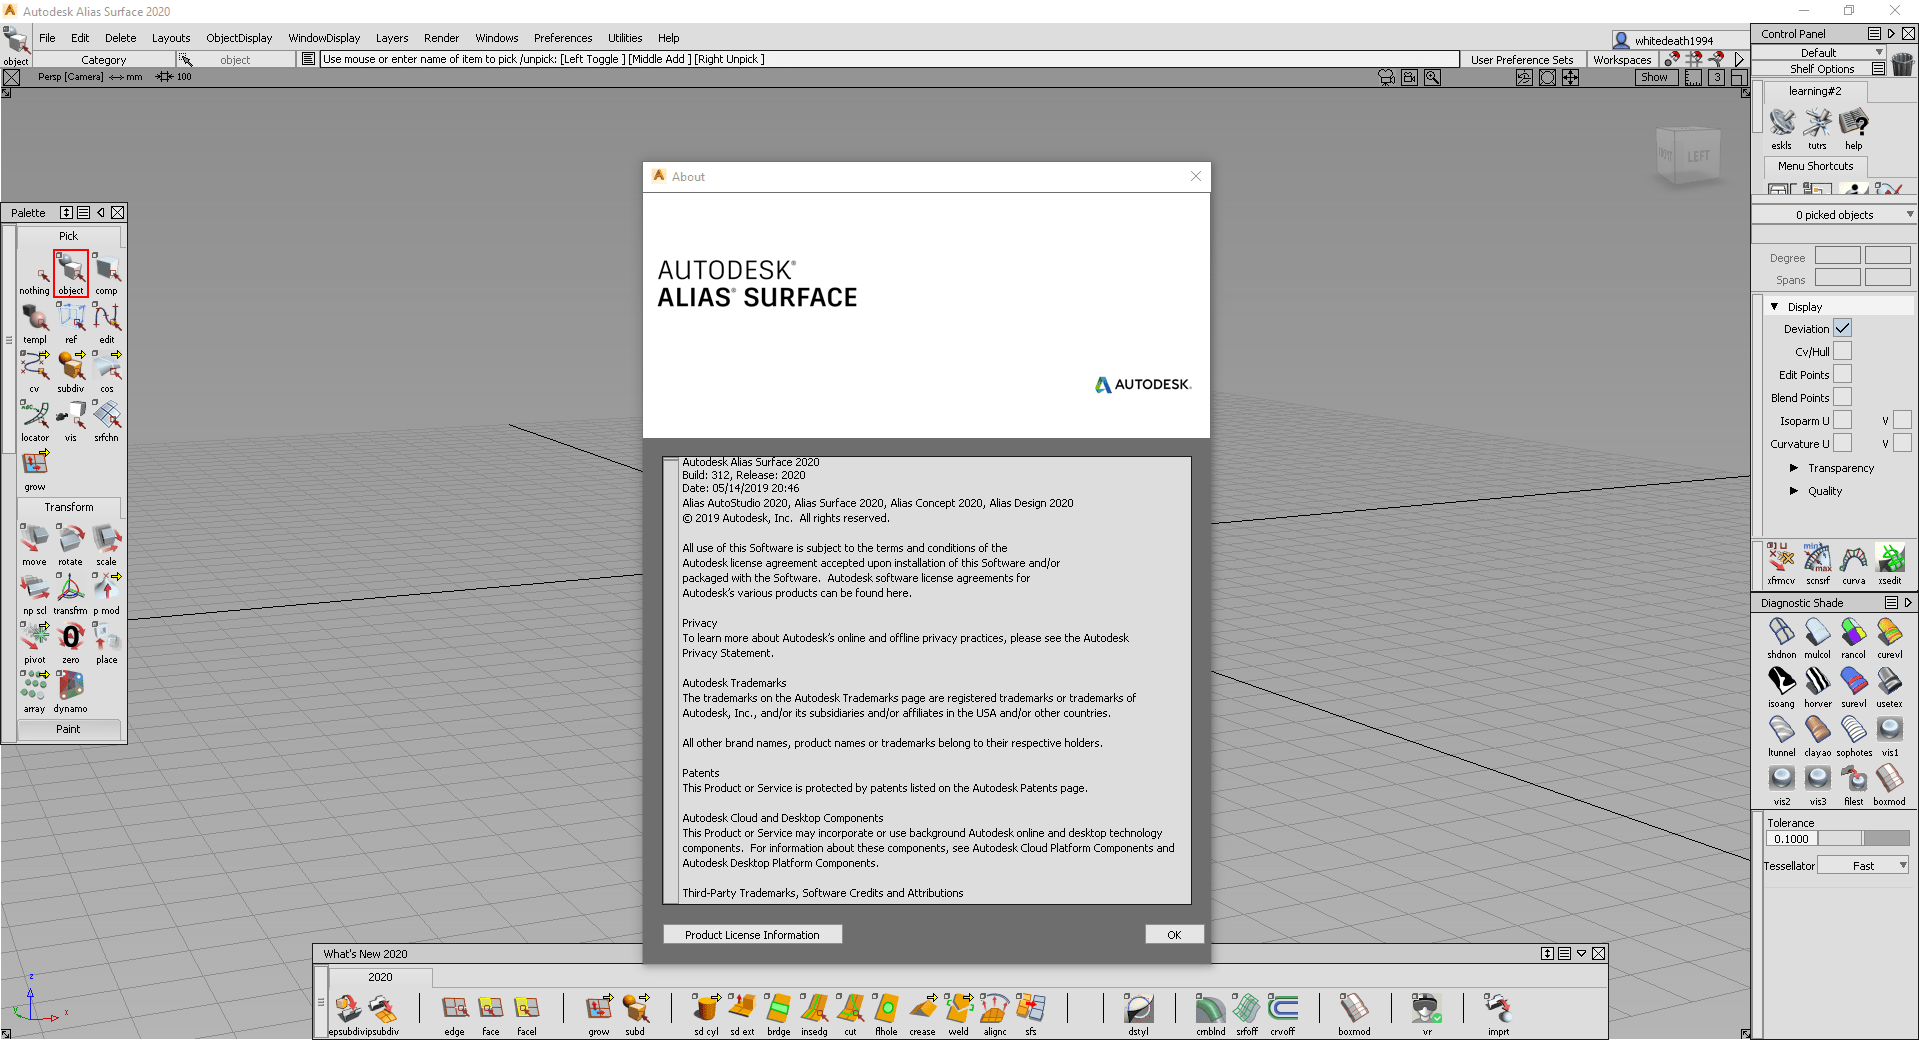 Download Autodesk Alias Surface 2020 (x64) - SoftArchive